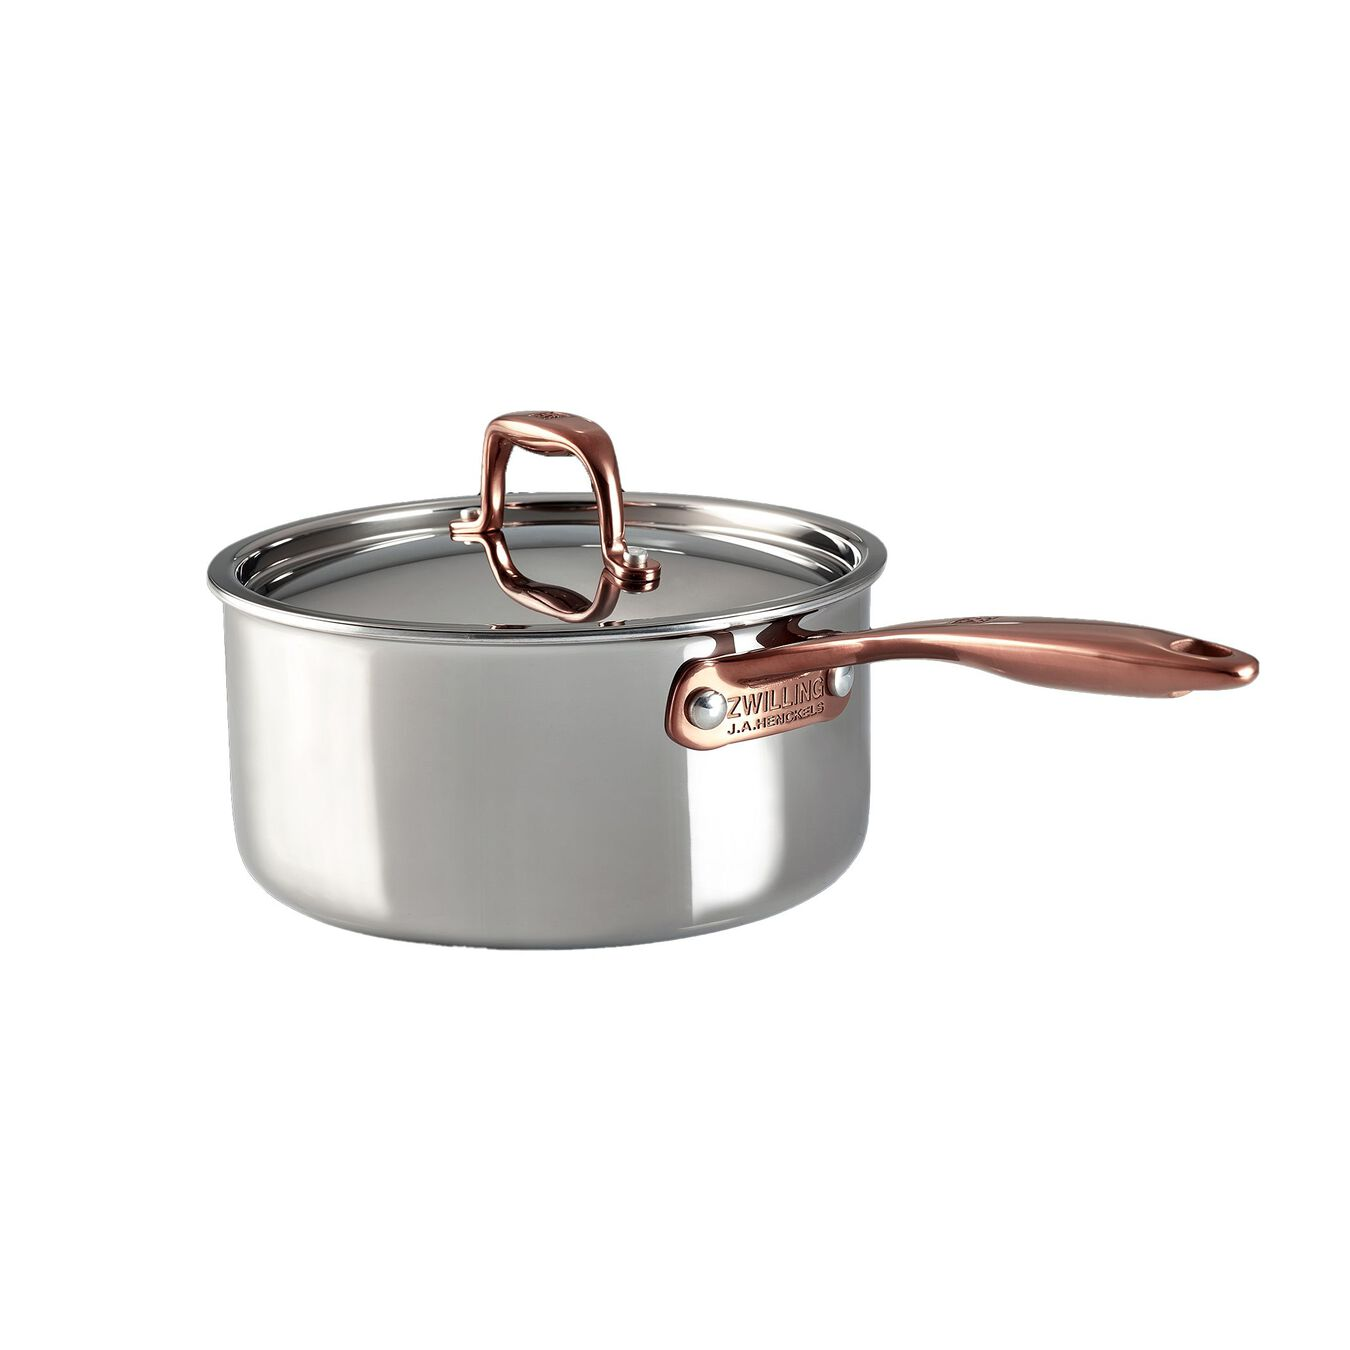 10-pcs 18/10 Stainless Steel Ensemble de casseroles et poêles,,large 3